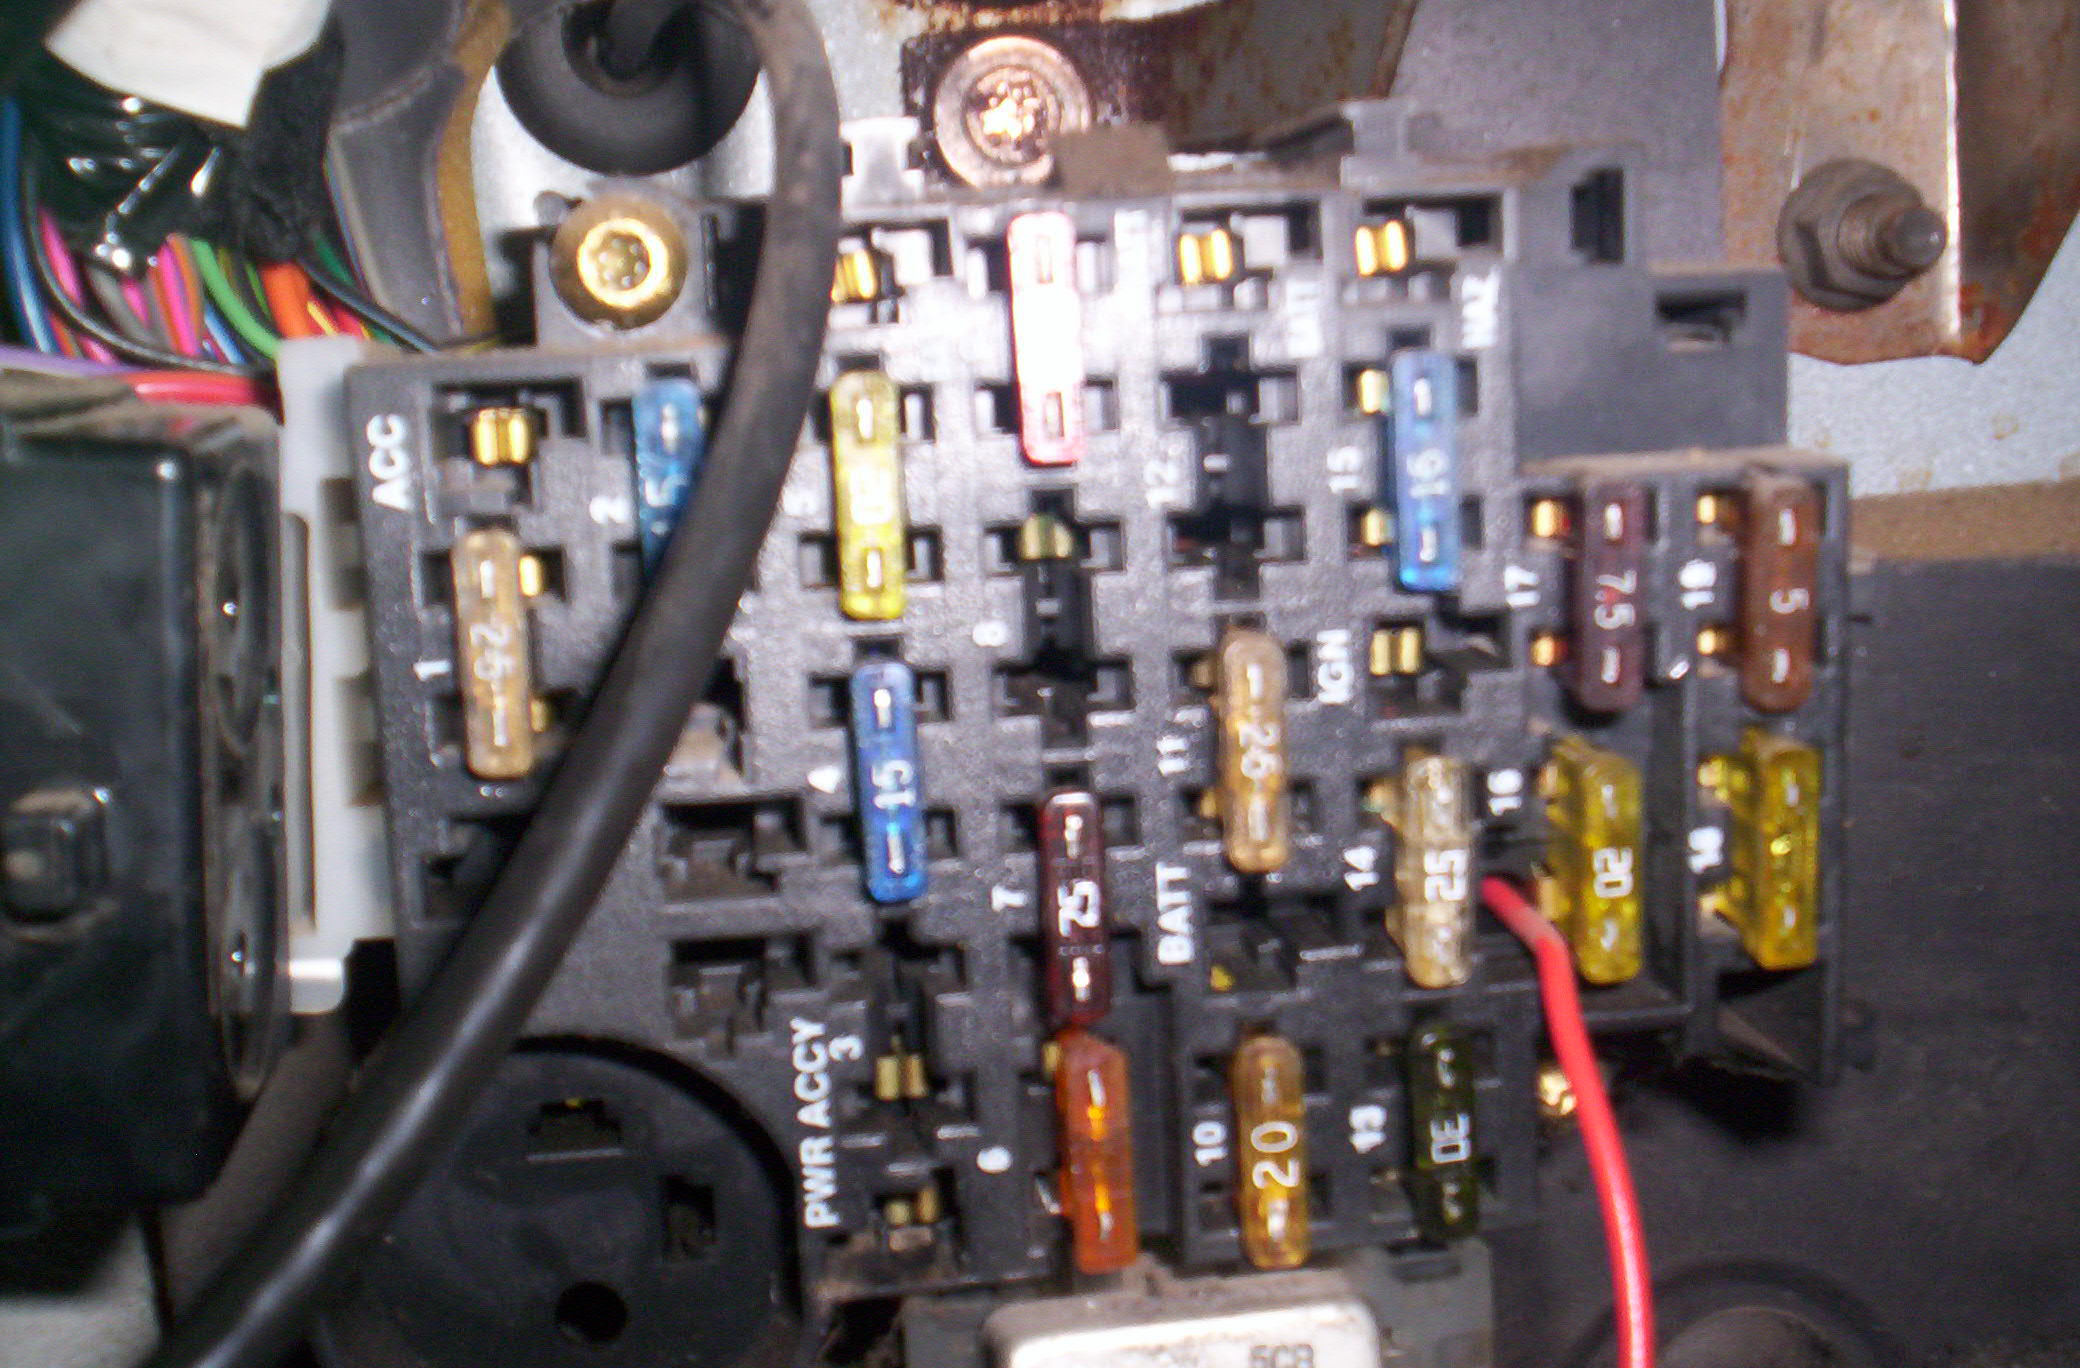 1995 Jeep Cherokee Horn Not Working: Where Is the Horn Relay ...  Jeep Cherokee Wiring Diagram Horn on 95 jeep cherokee spark plug firing order, 95 jeep wiring harness diagram, 95 jeep cherokee flasher relay, 95 jeep cherokee neutral safety switch, 1995 jeep wiring diagram, 95 jeep grand cherokee fuse box diagram, 95 jeep cherokee seats, 95 jeep cherokee tires, 95 jeep cherokee headlight, jeep liberty ac wiring diagram, 95 jeep cherokee horn, 95 jeep cherokee water pump, 95 jeep cherokee automatic transmission, 1999 jeep cherokee sport fuse diagram, 95 jeep cherokee fuel system, 95 jeep cherokee 5.5 circuit breaker, 95 jeep cherokee manual, 95 jeep cherokee fuse panel diagram, 95 jeep cherokee vacuum diagram, 97 jeep grand cherokee diagram,